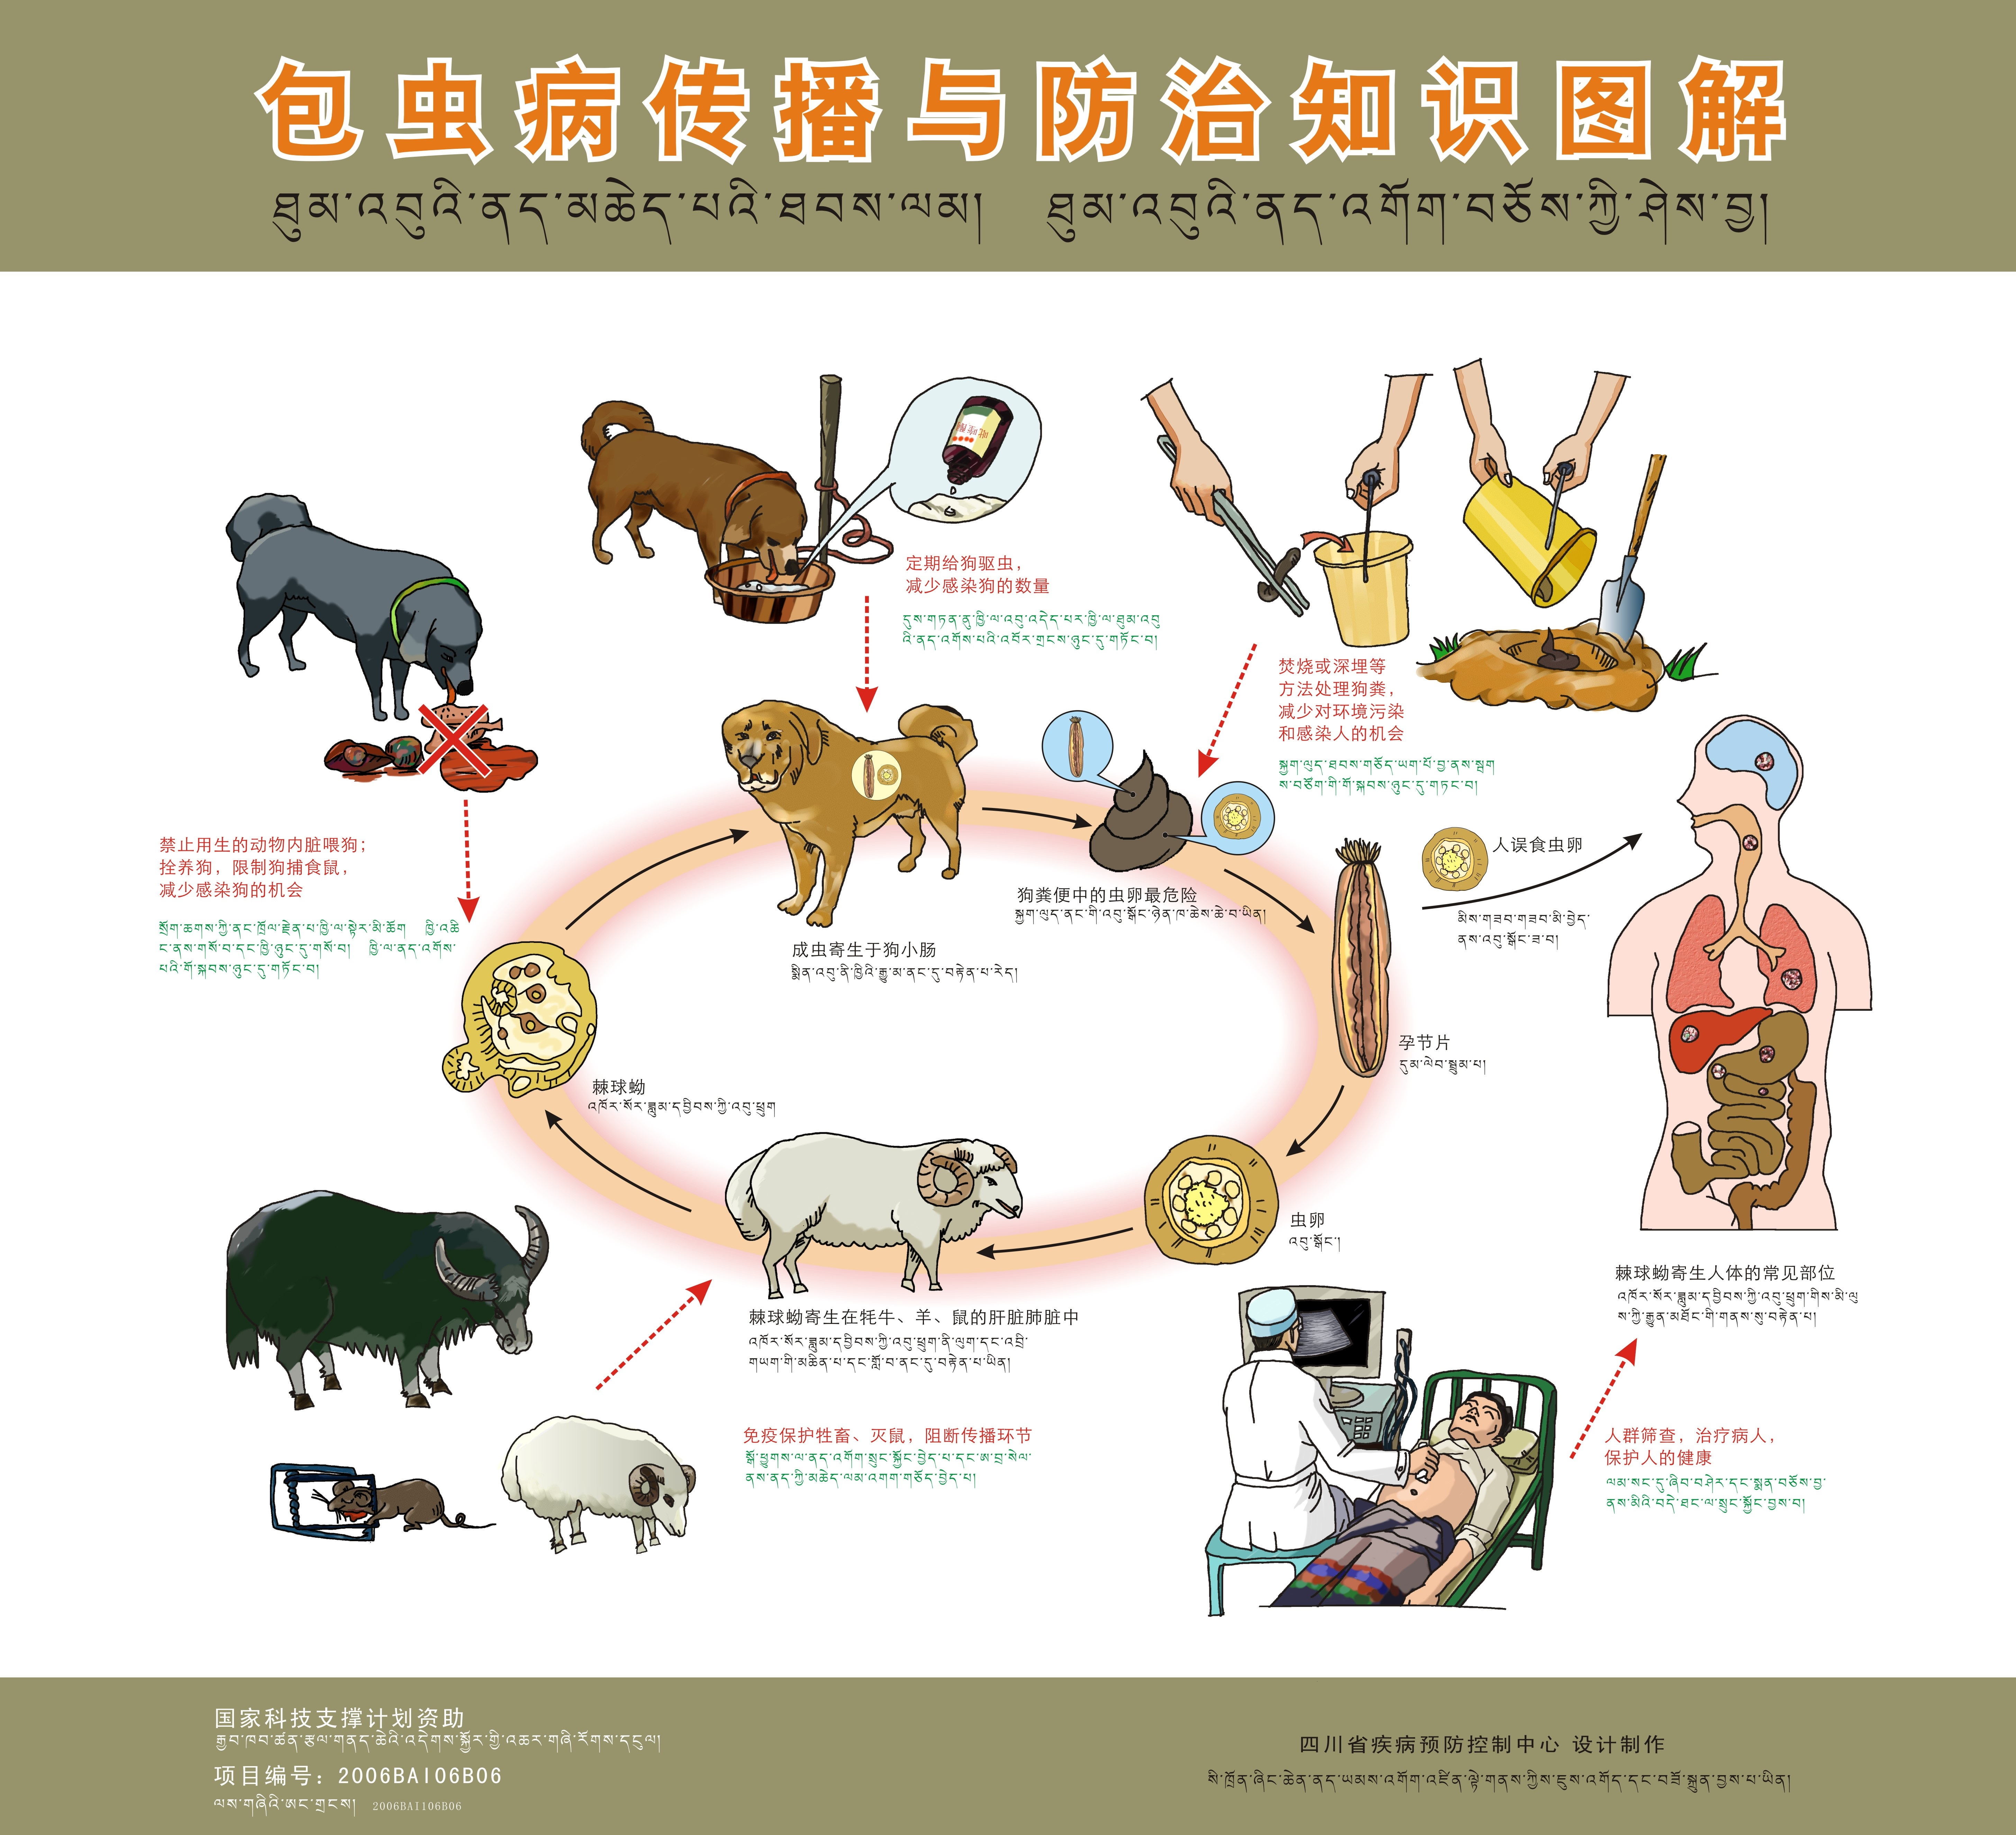 Priorities for research and control of cestode zoonoses in Asia.